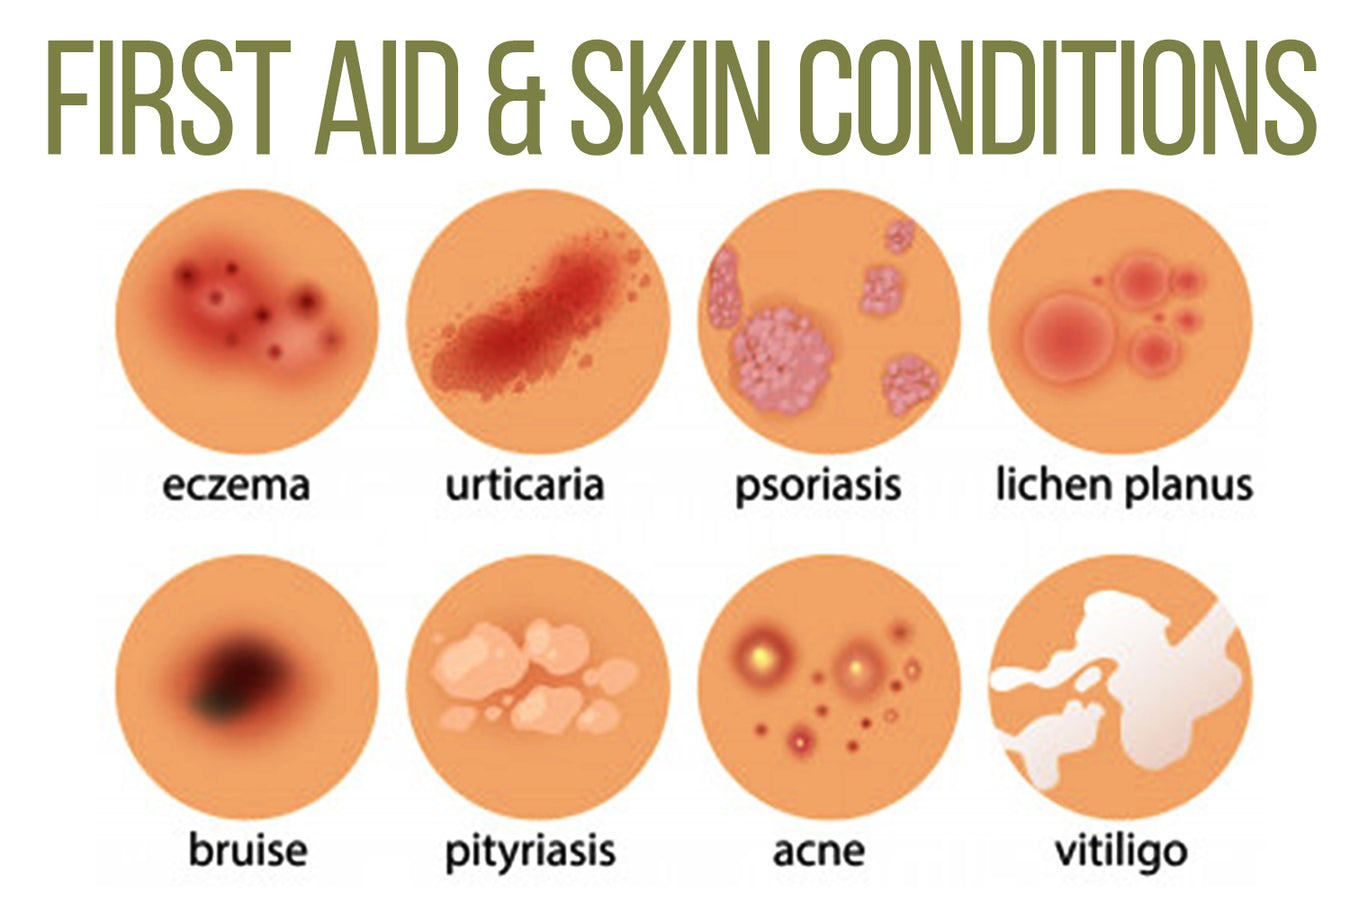 FIRST AID & SKIN CONDITIONS